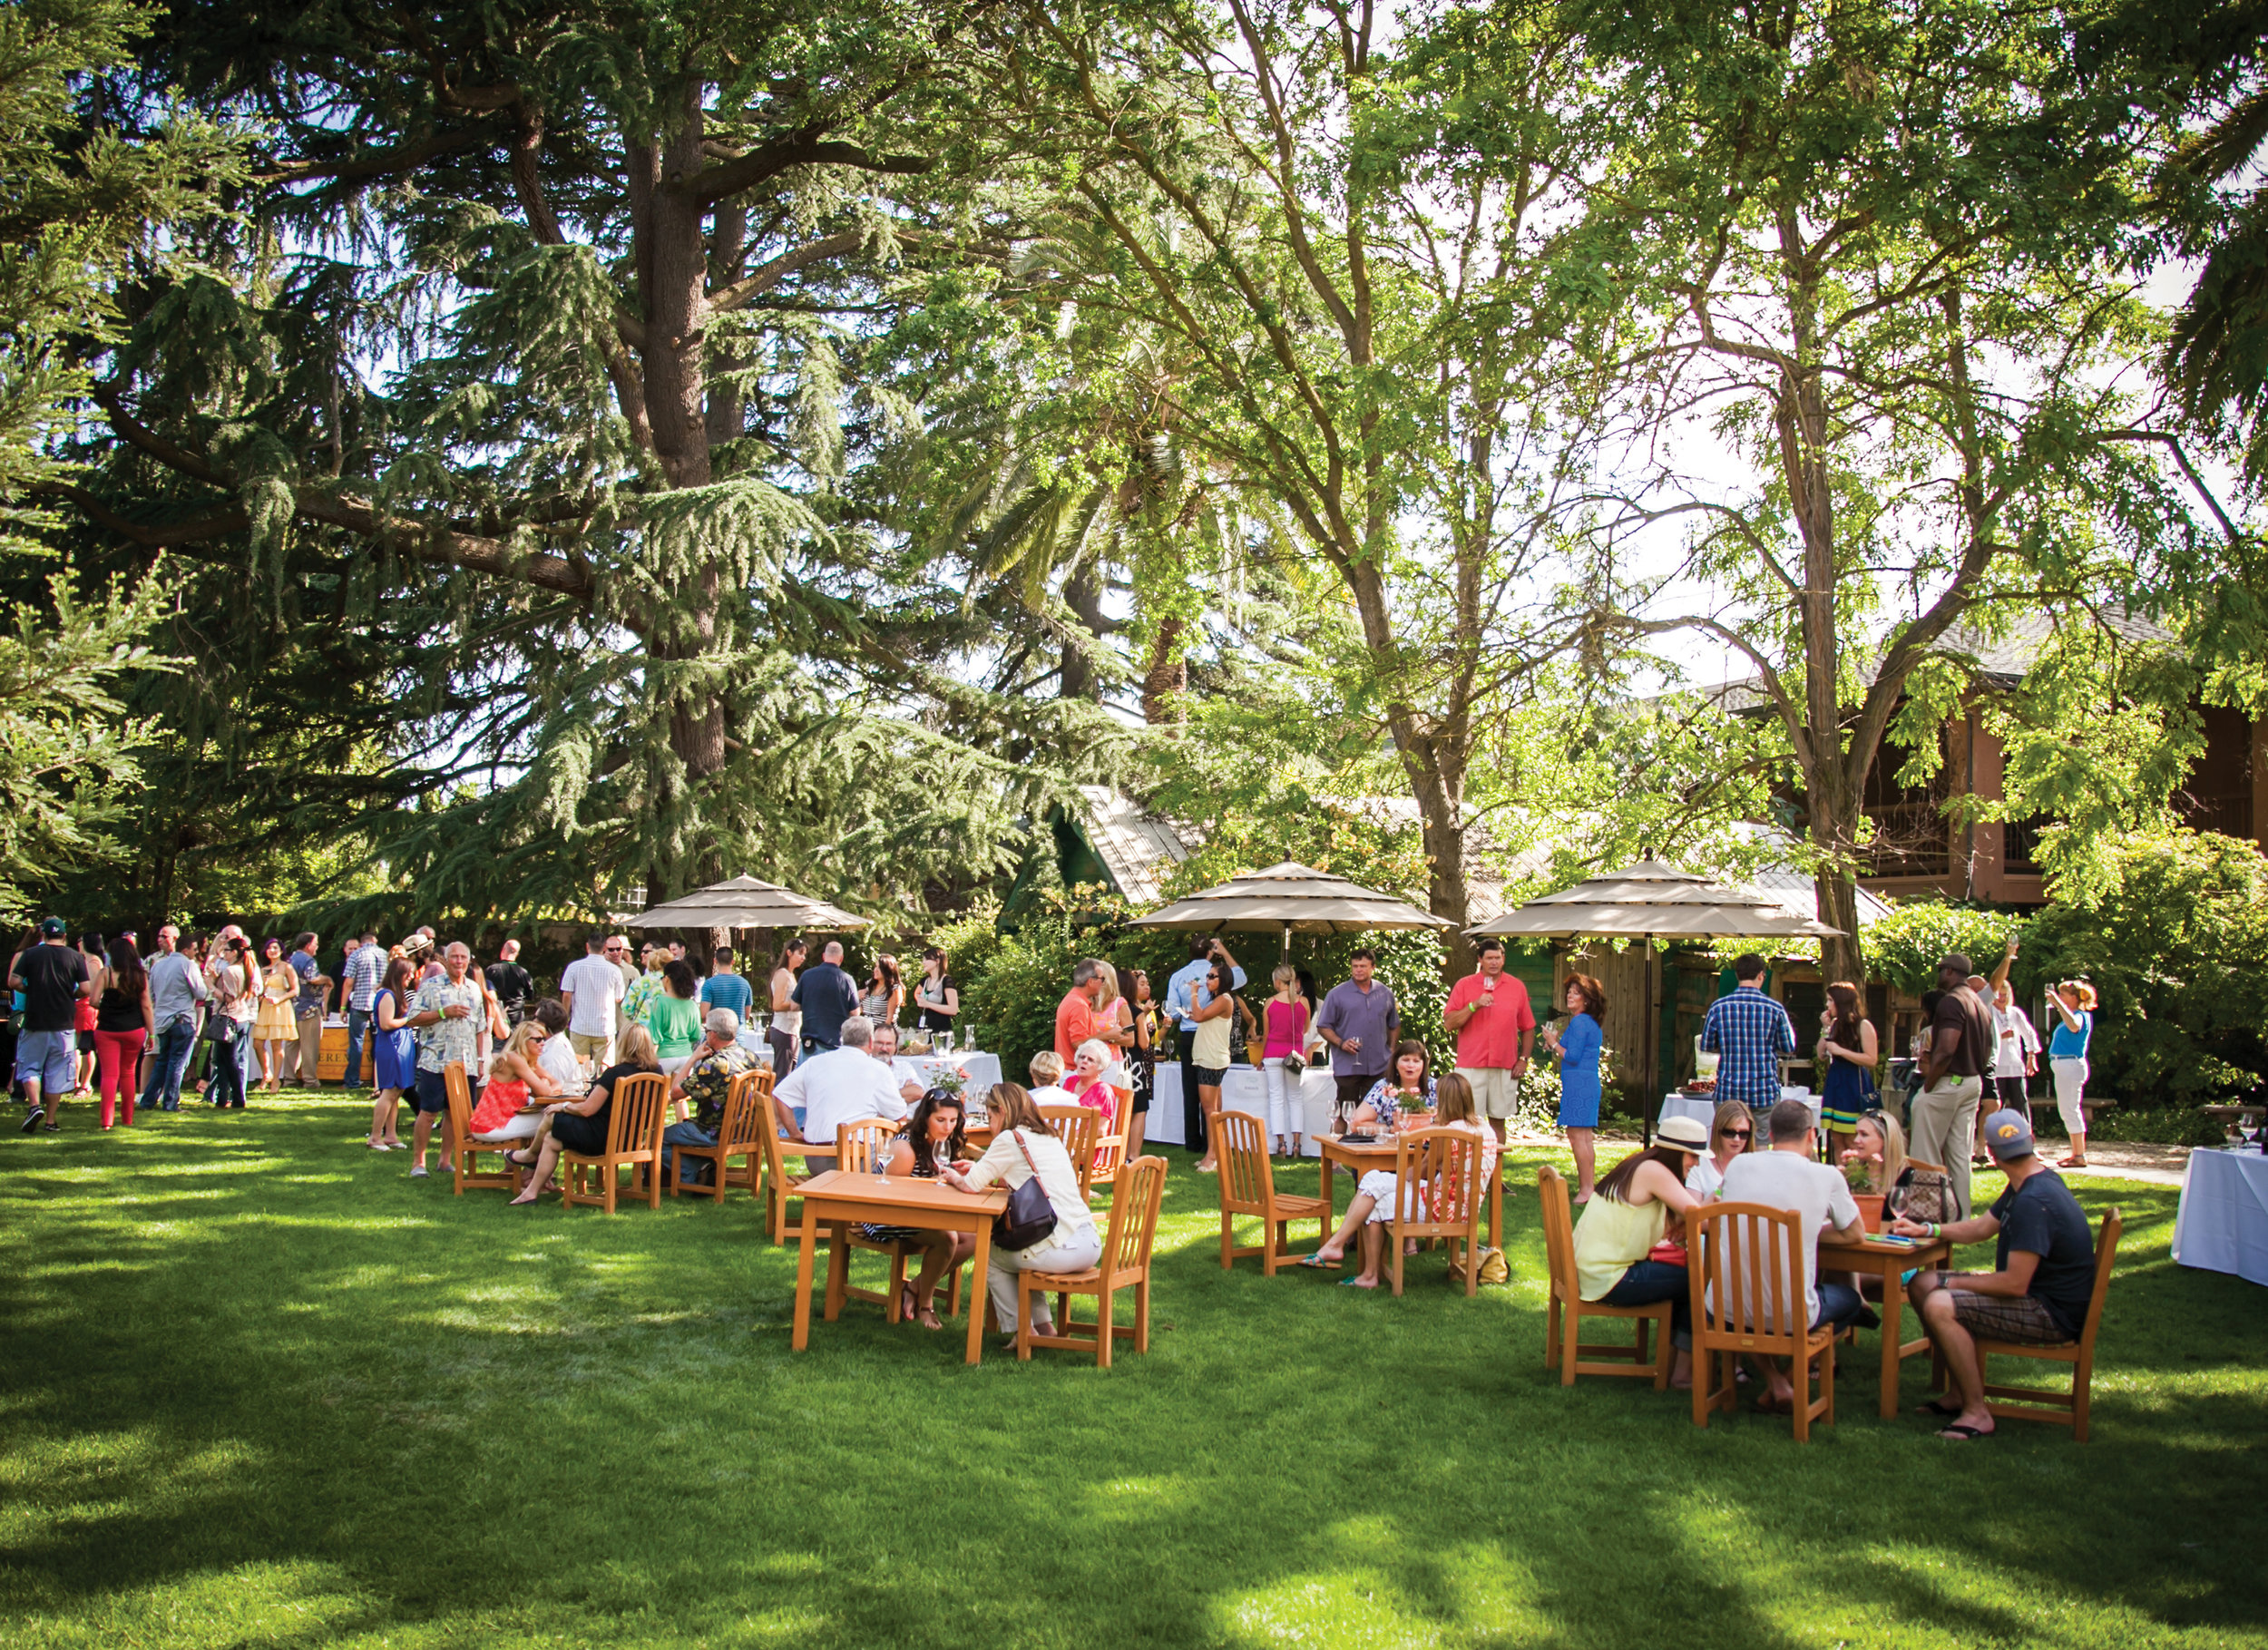 photo of the wedding garden with people mingling at an event